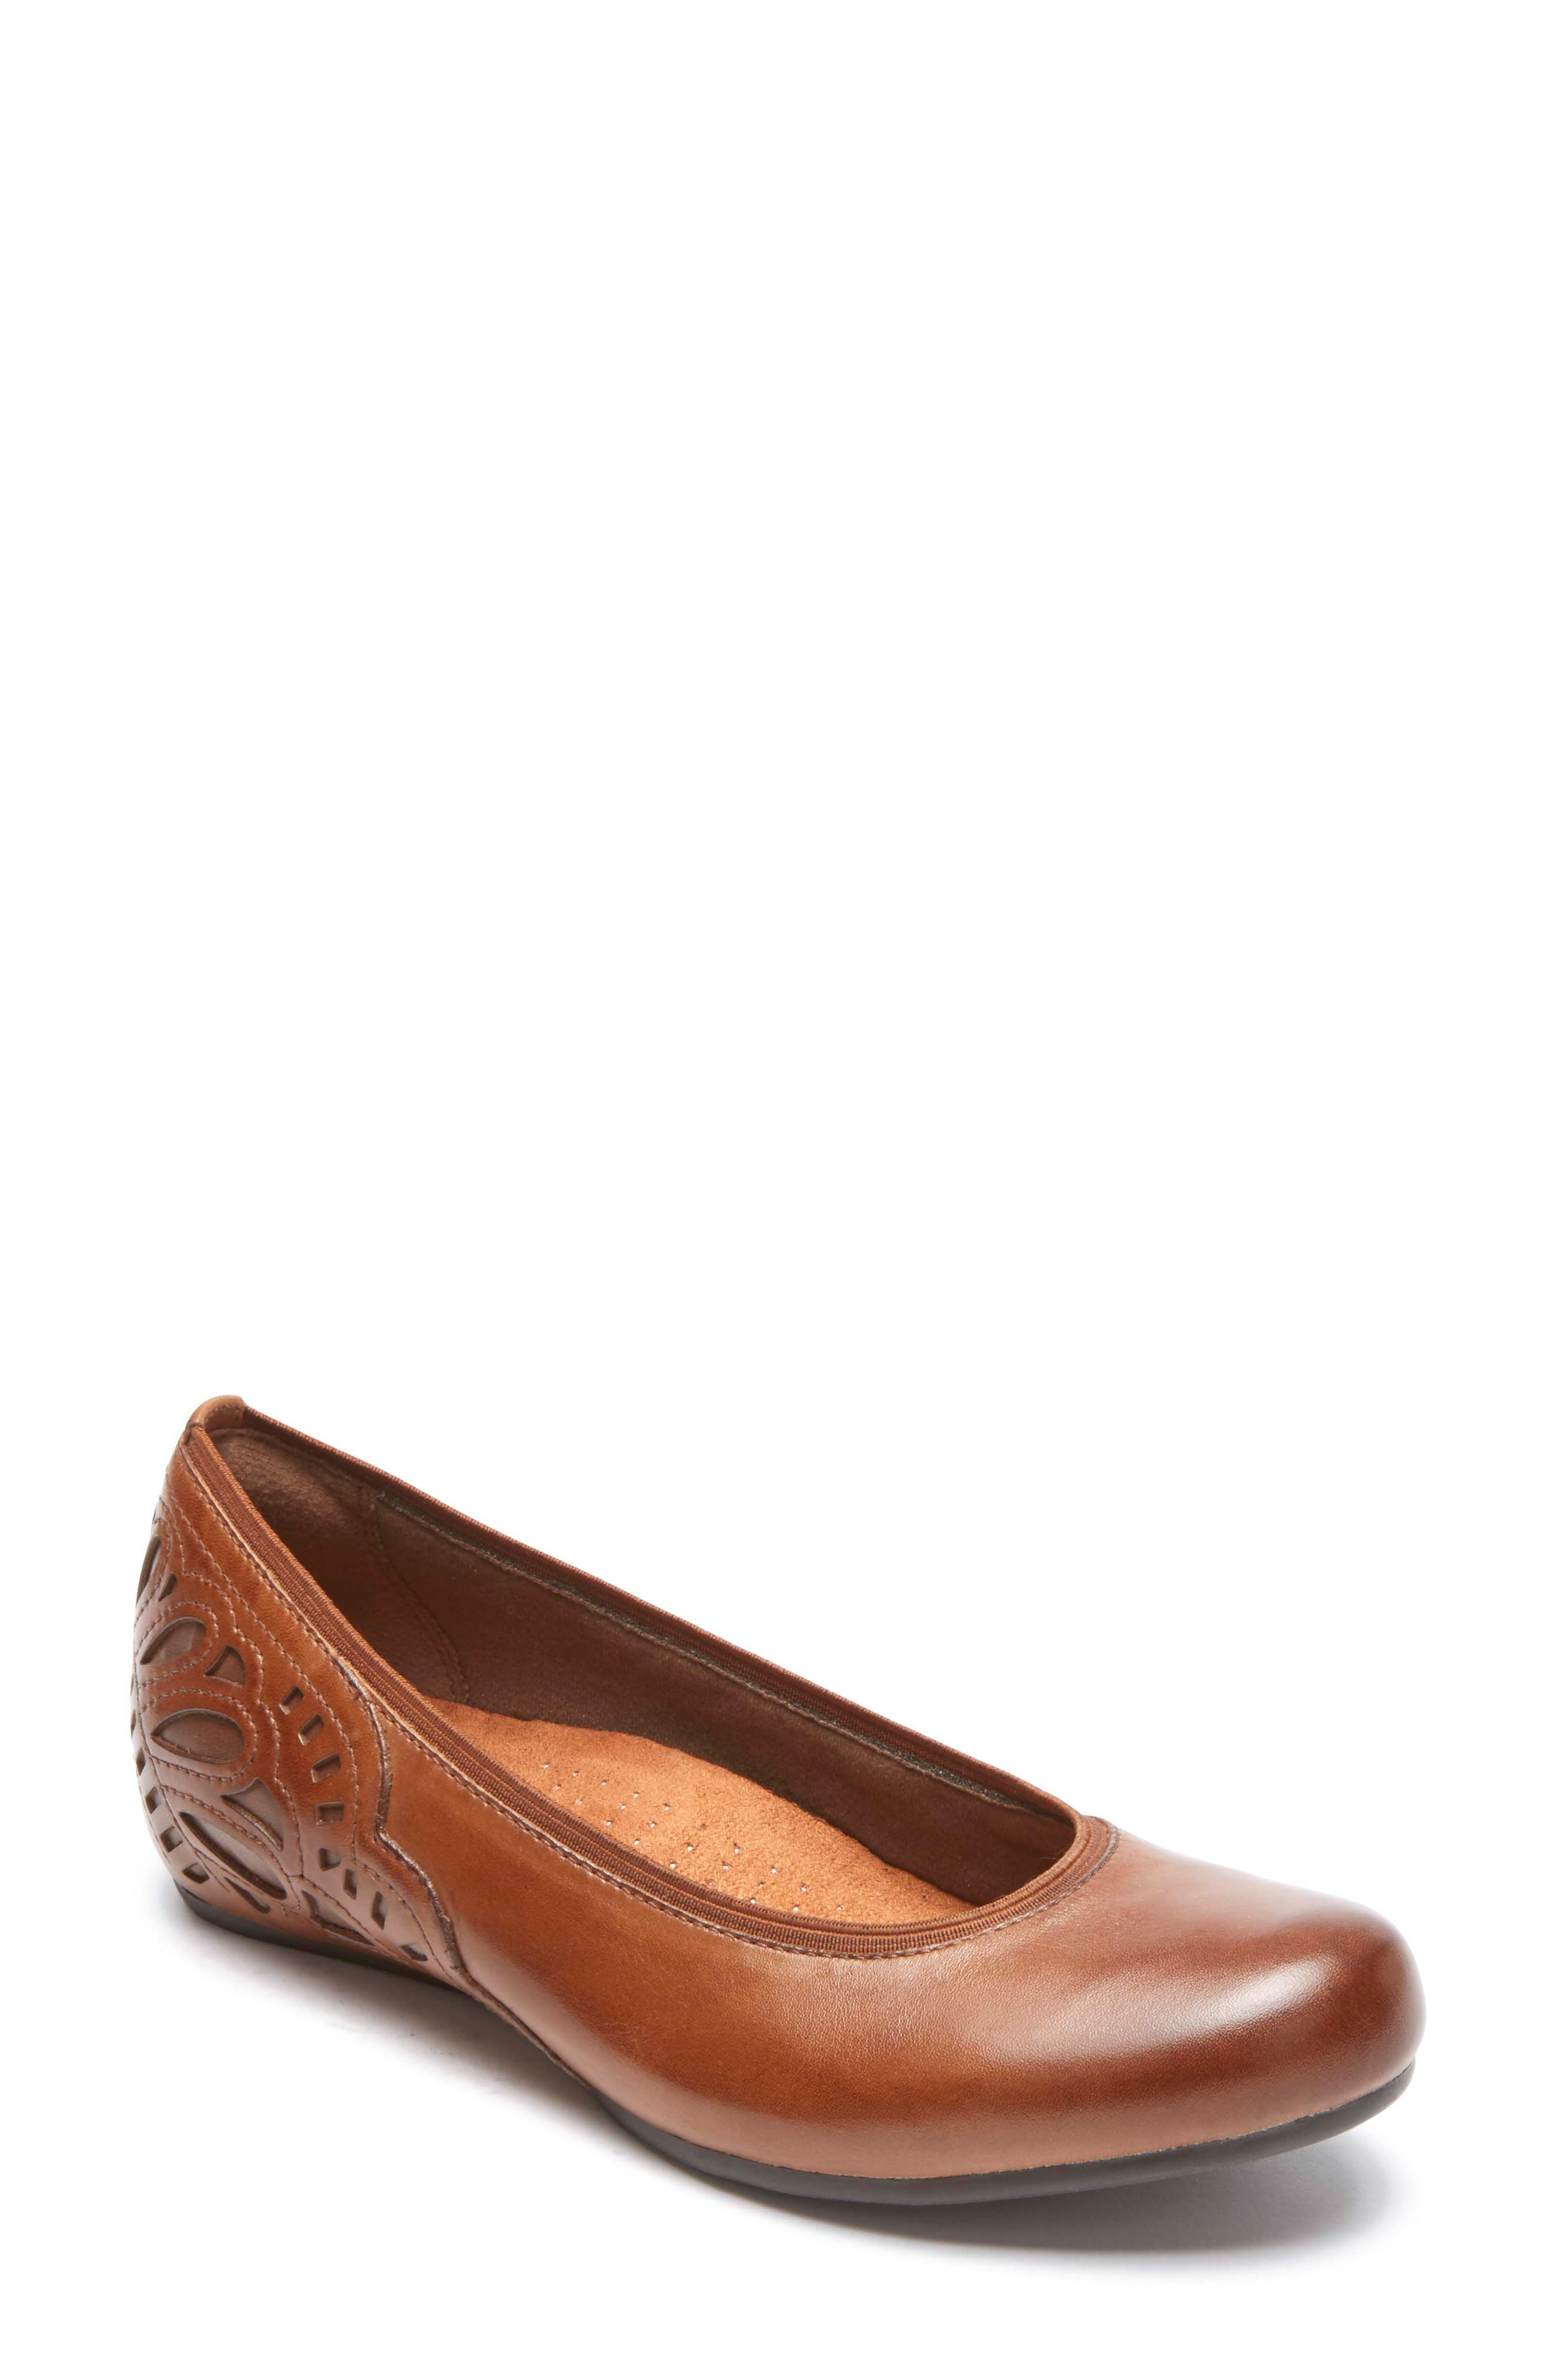 Alternate Image 1 Selected - Rockport Cobb Hill Sharleen Wedge Pump (Women)